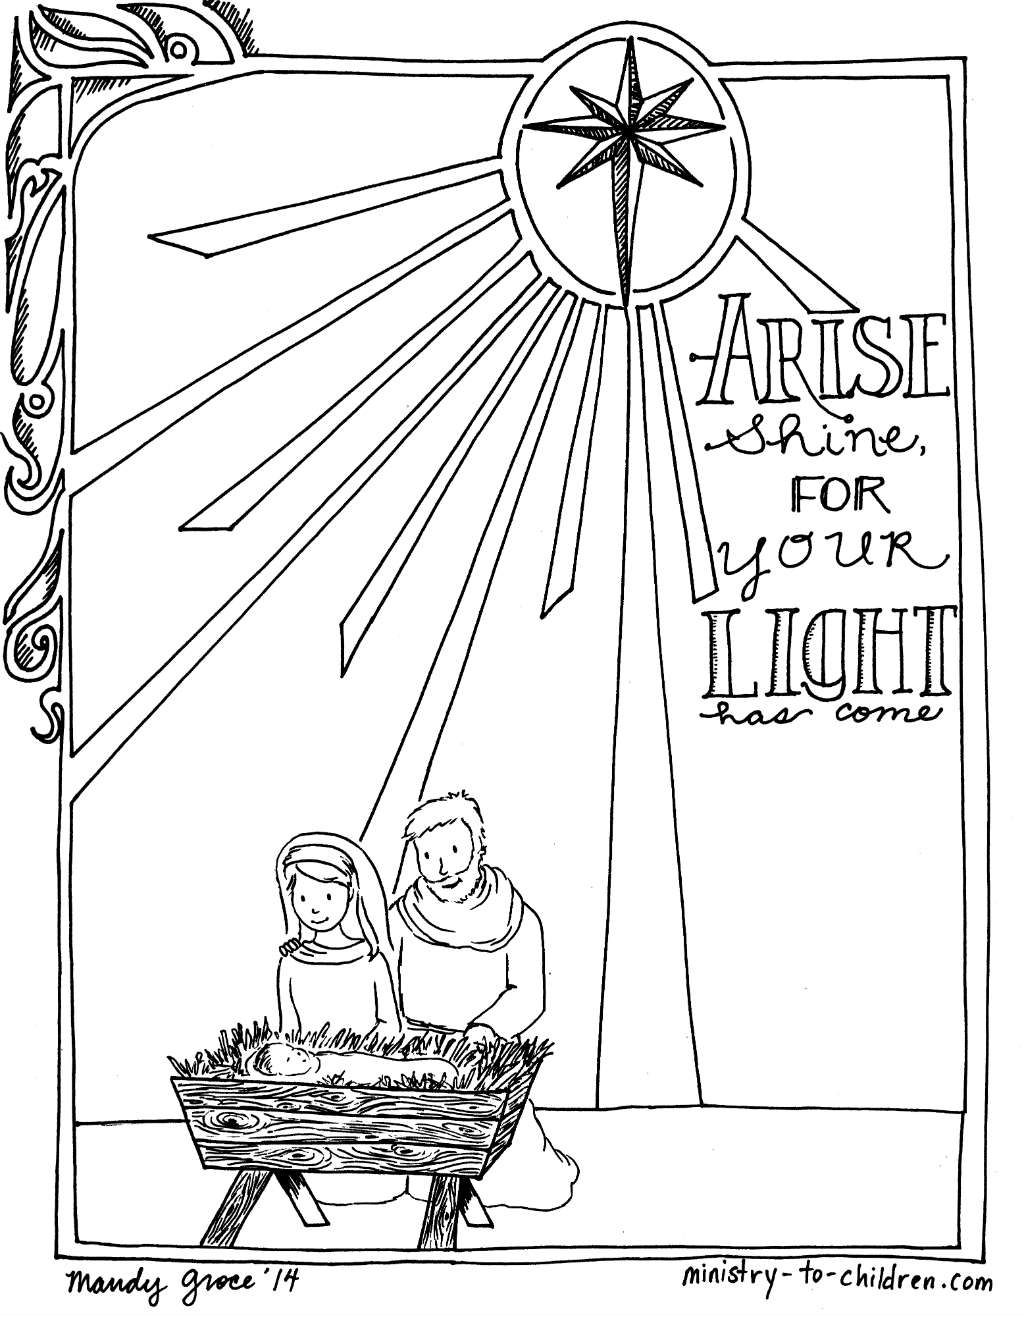 Colouring sheets nativity scene - We Hope Your Children Will Enjoy This Nativity Scene Coloring Page This Christmas It Has